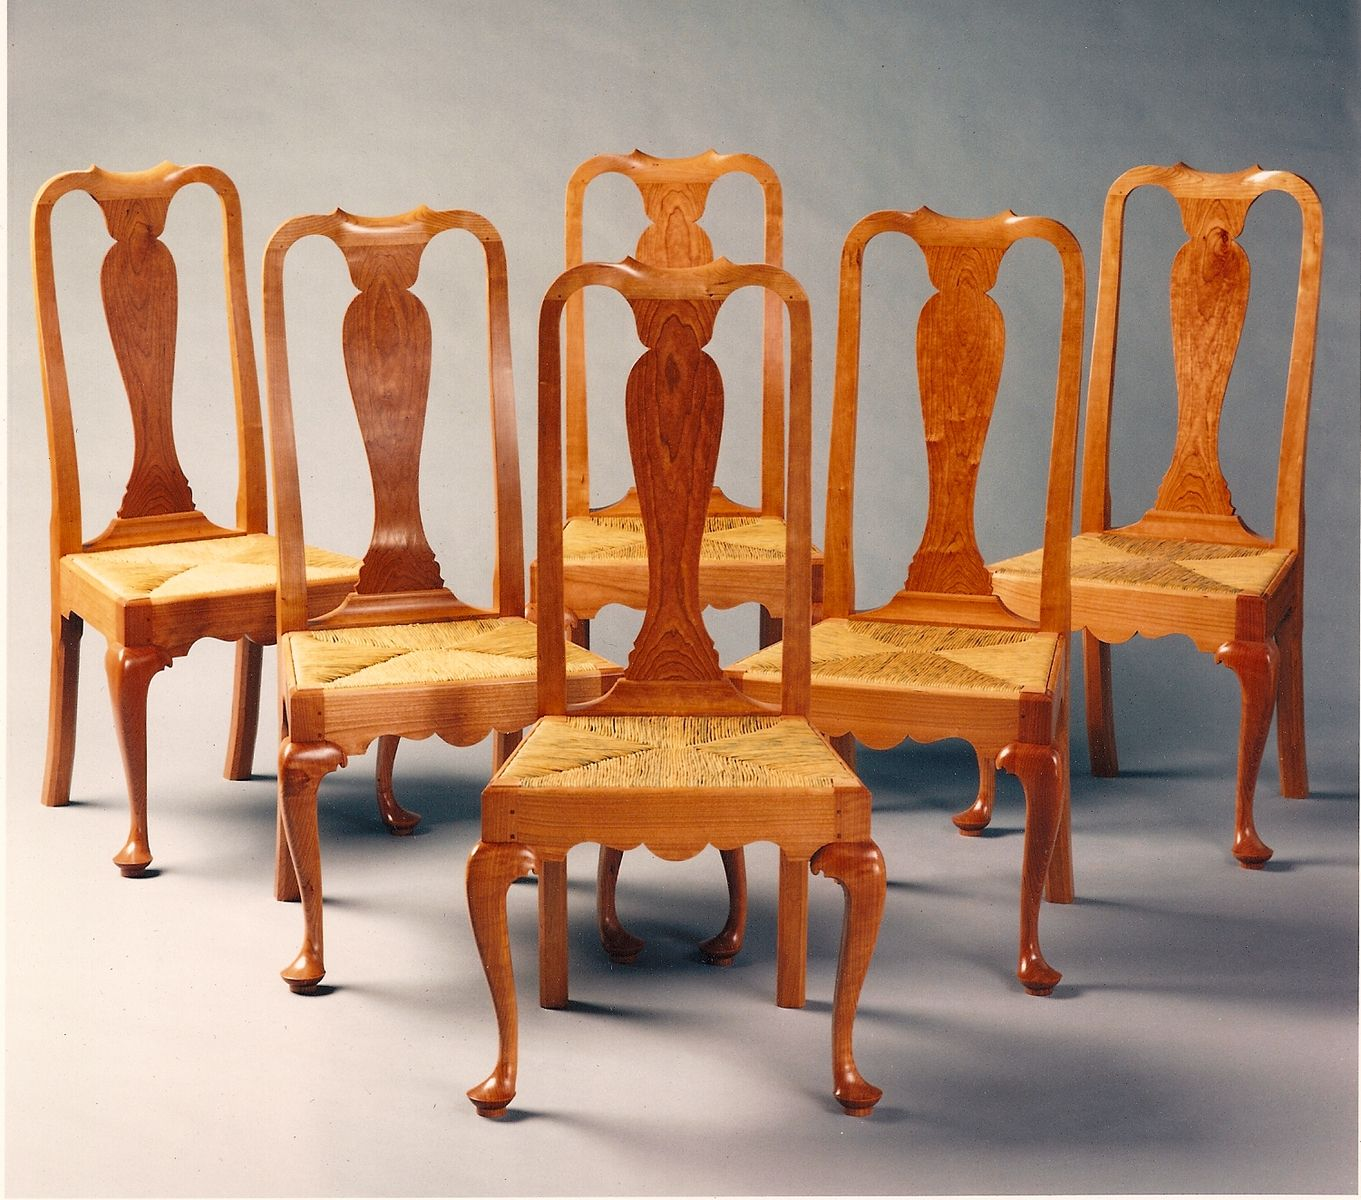 Hand crafted queen anne dining room chairs by paula garbarino custom furniture - Queen anne dining room furniture ...